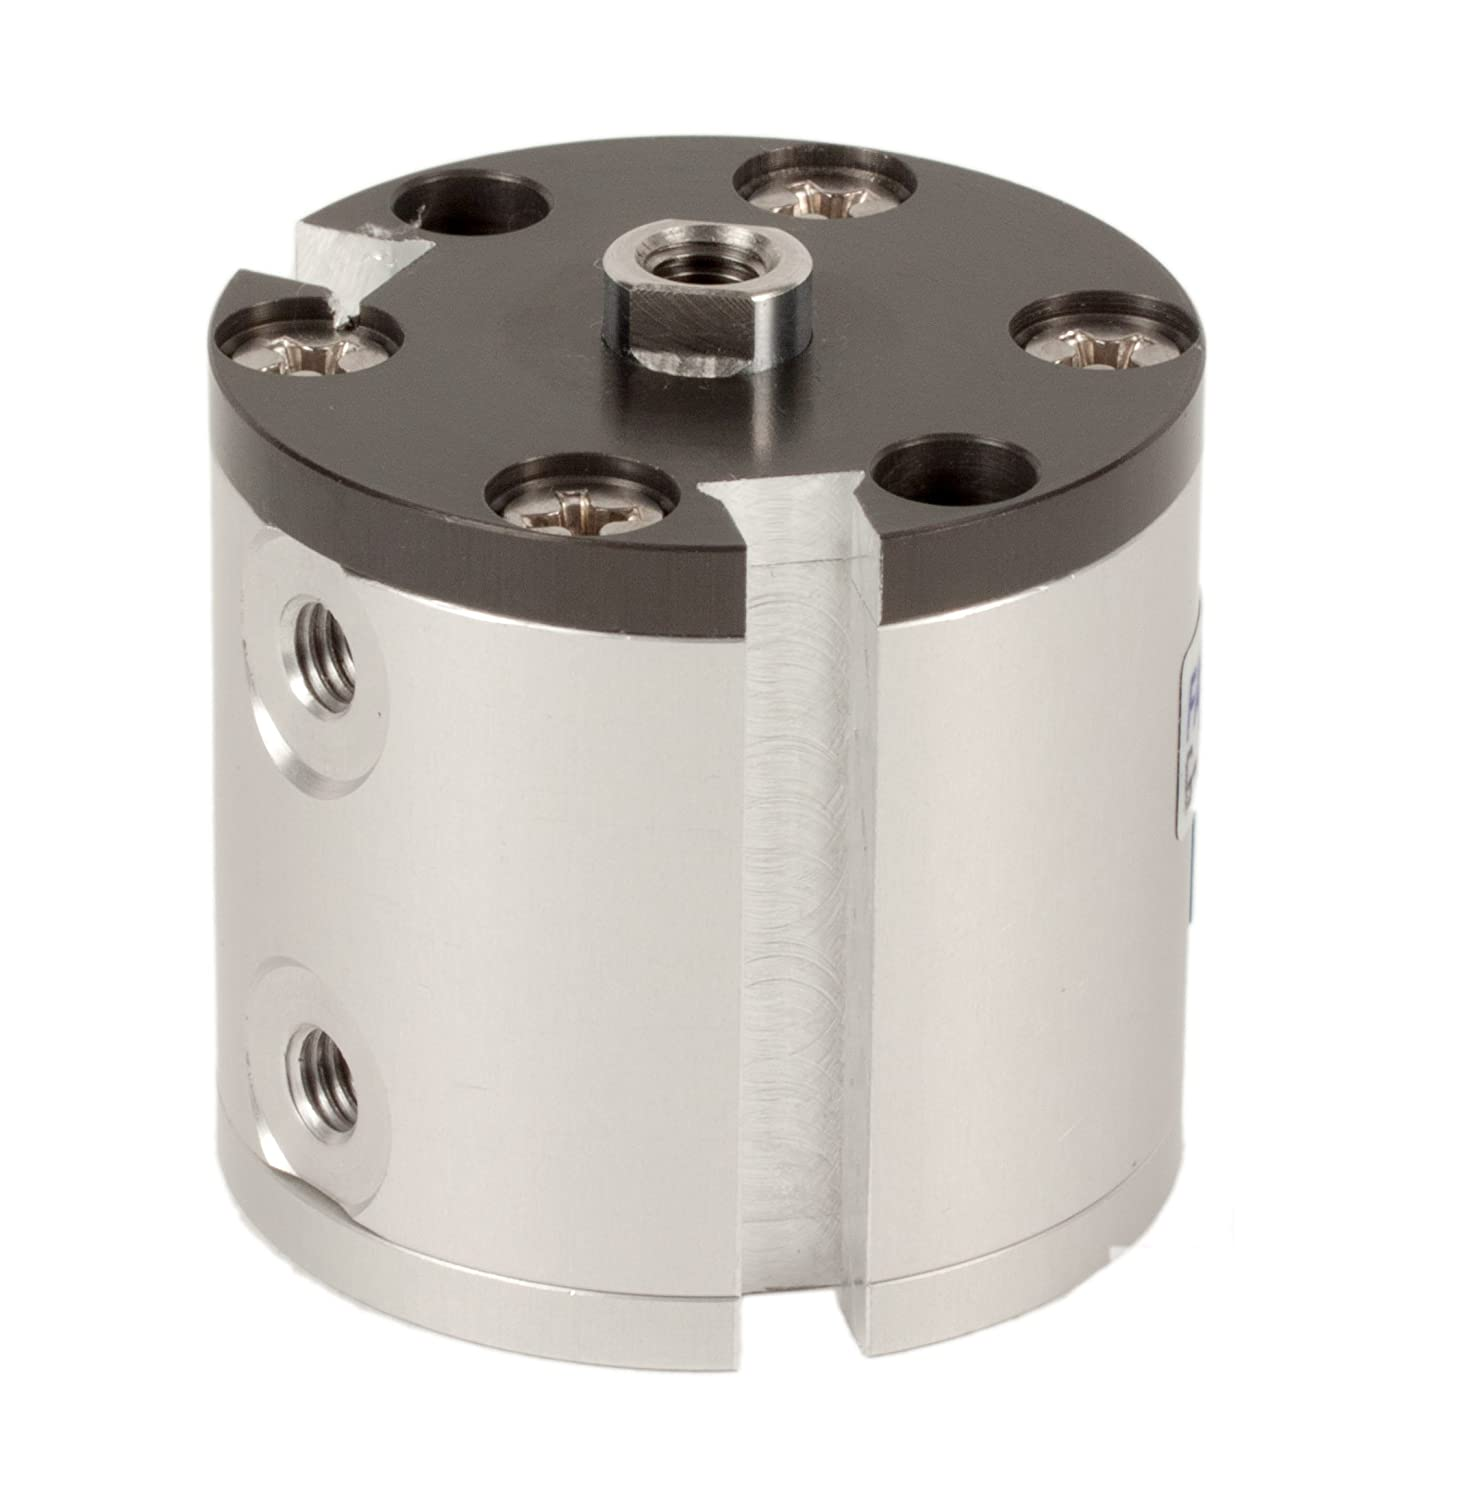 Fabco-Air G-7-X-E Original Pancake Cylinder, Double Acting, Maximum Pressure of 250 PSI, Switch Ready with Magnet, 3/4' Bore Diameter x 3/4' Stroke 3/4 Bore Diameter x 3/4 Stroke FAB   G-7-X-E